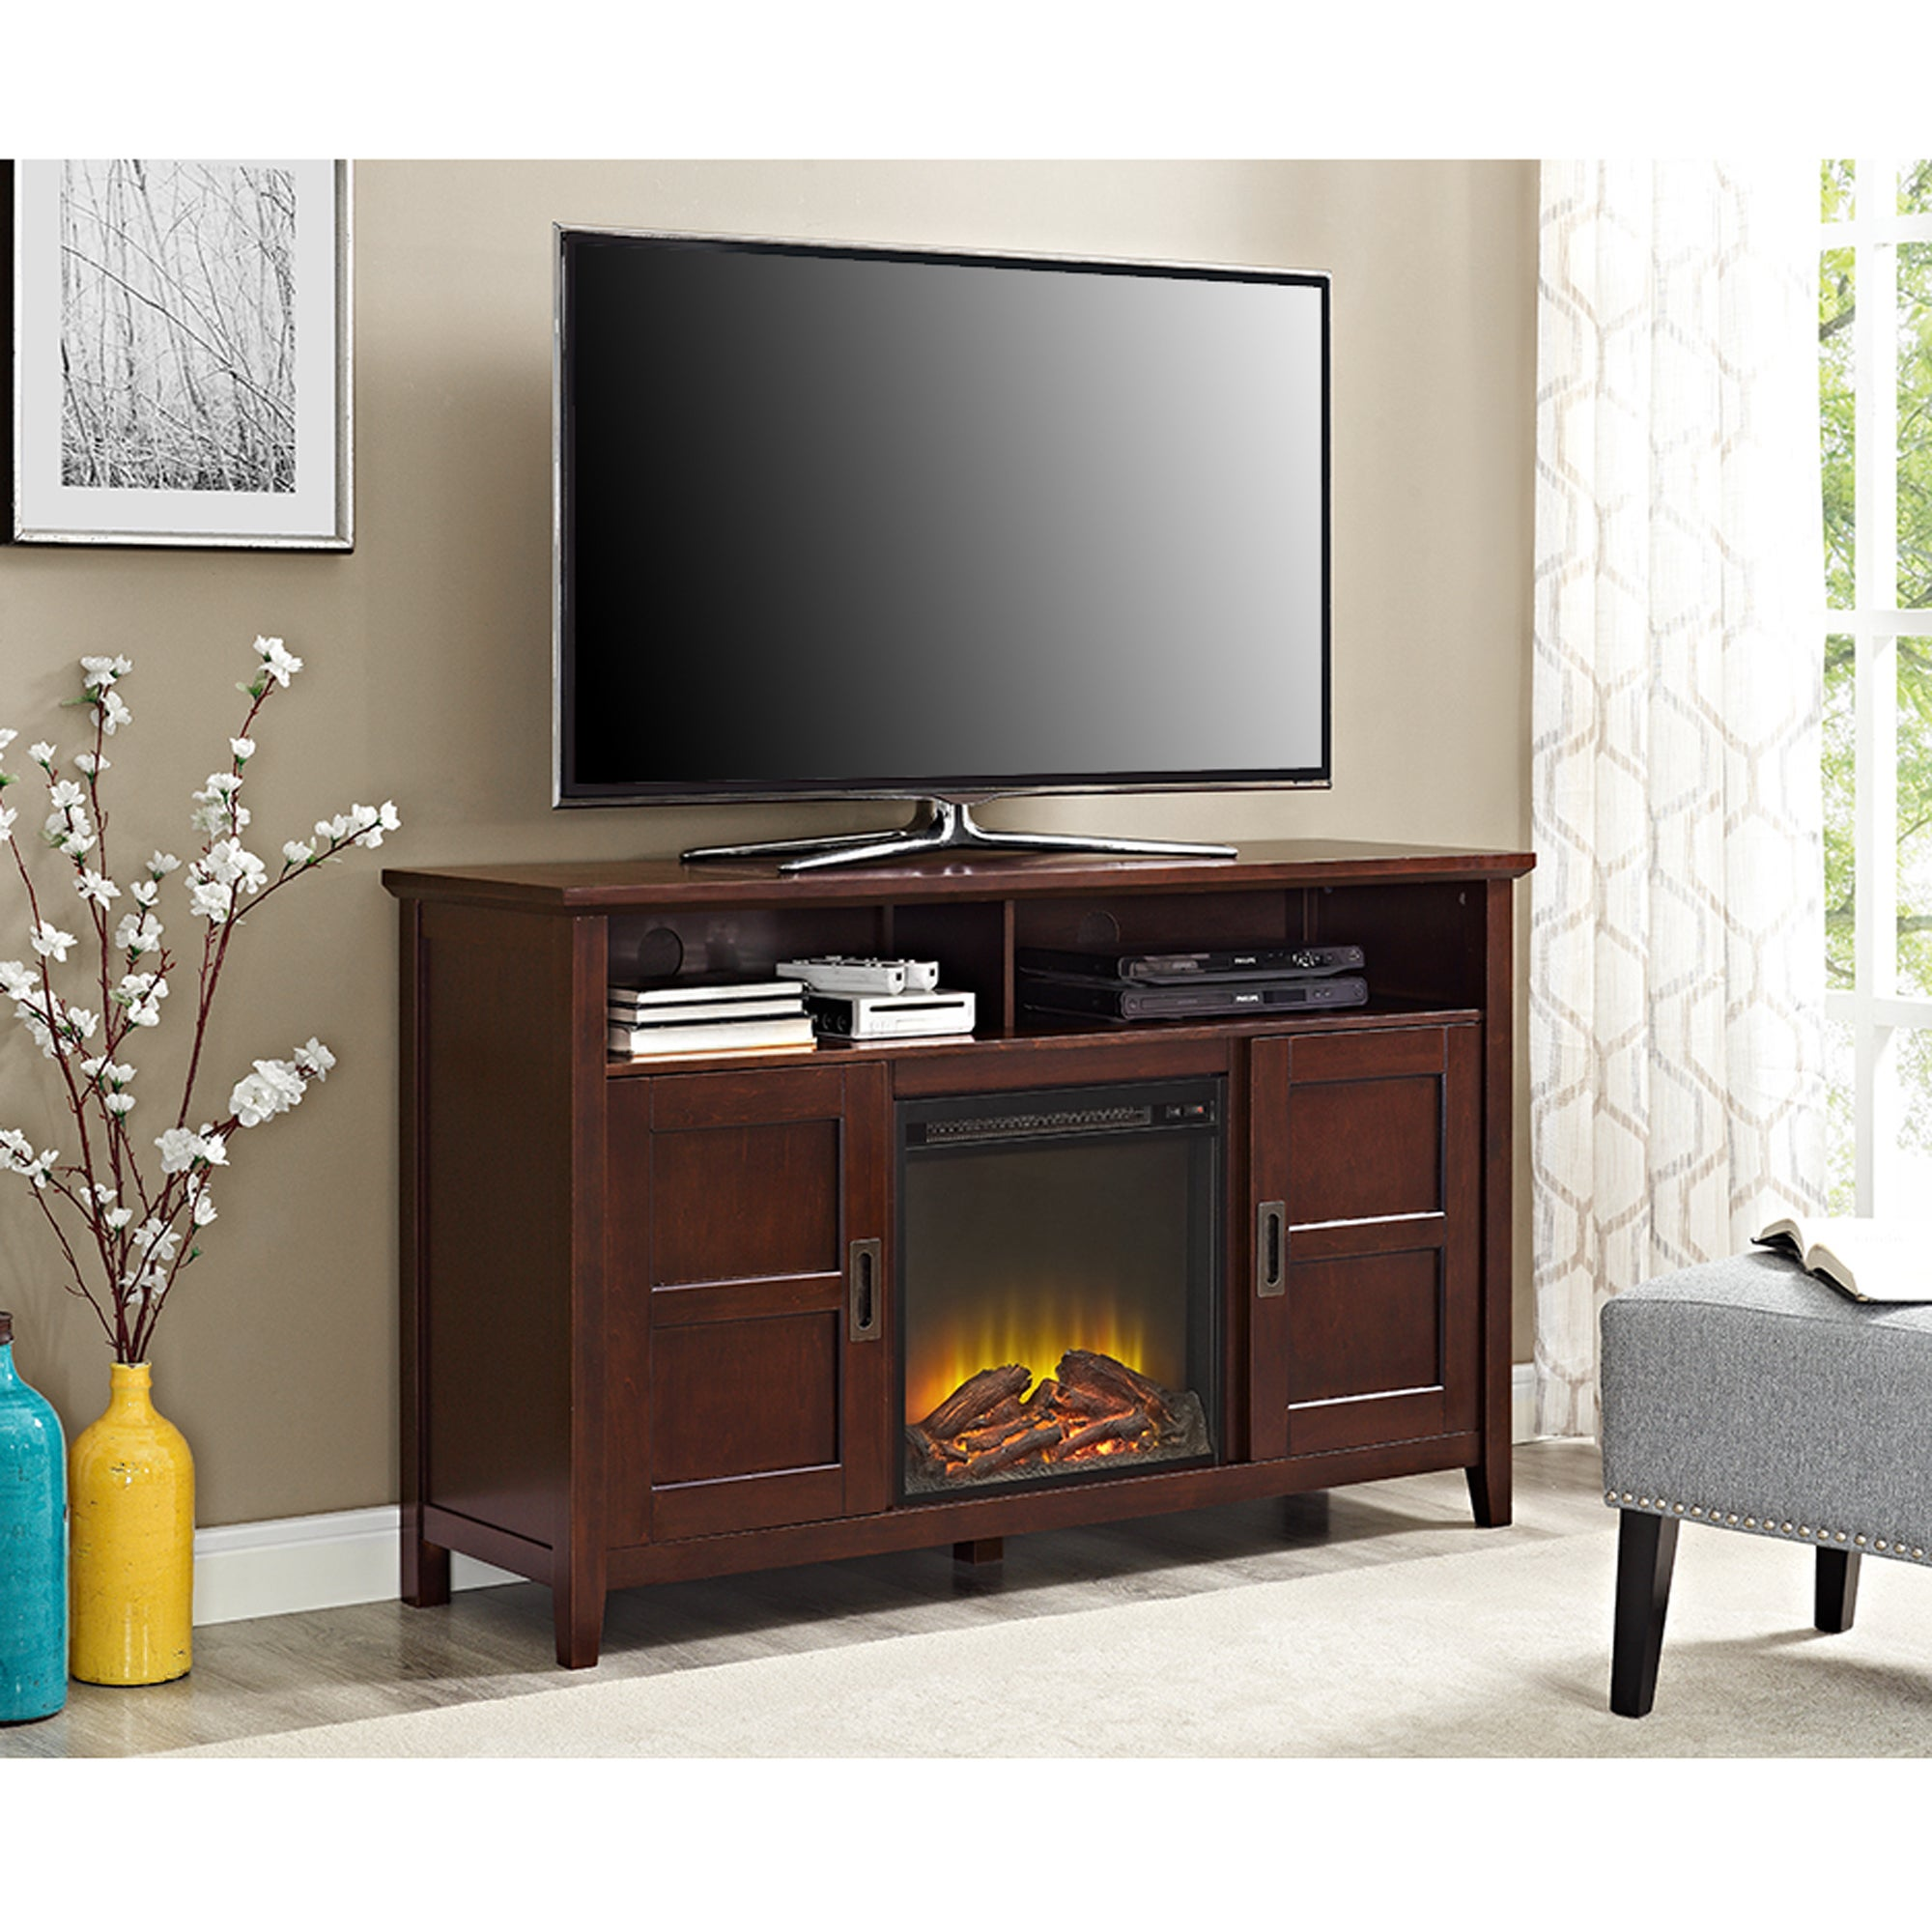 Chic tv stands Metal Rustic Chic Fireplace Tv Stand Coffee Overstock Shop Rustic Chic Fireplace Tv Stand Coffee Free Shipping Today